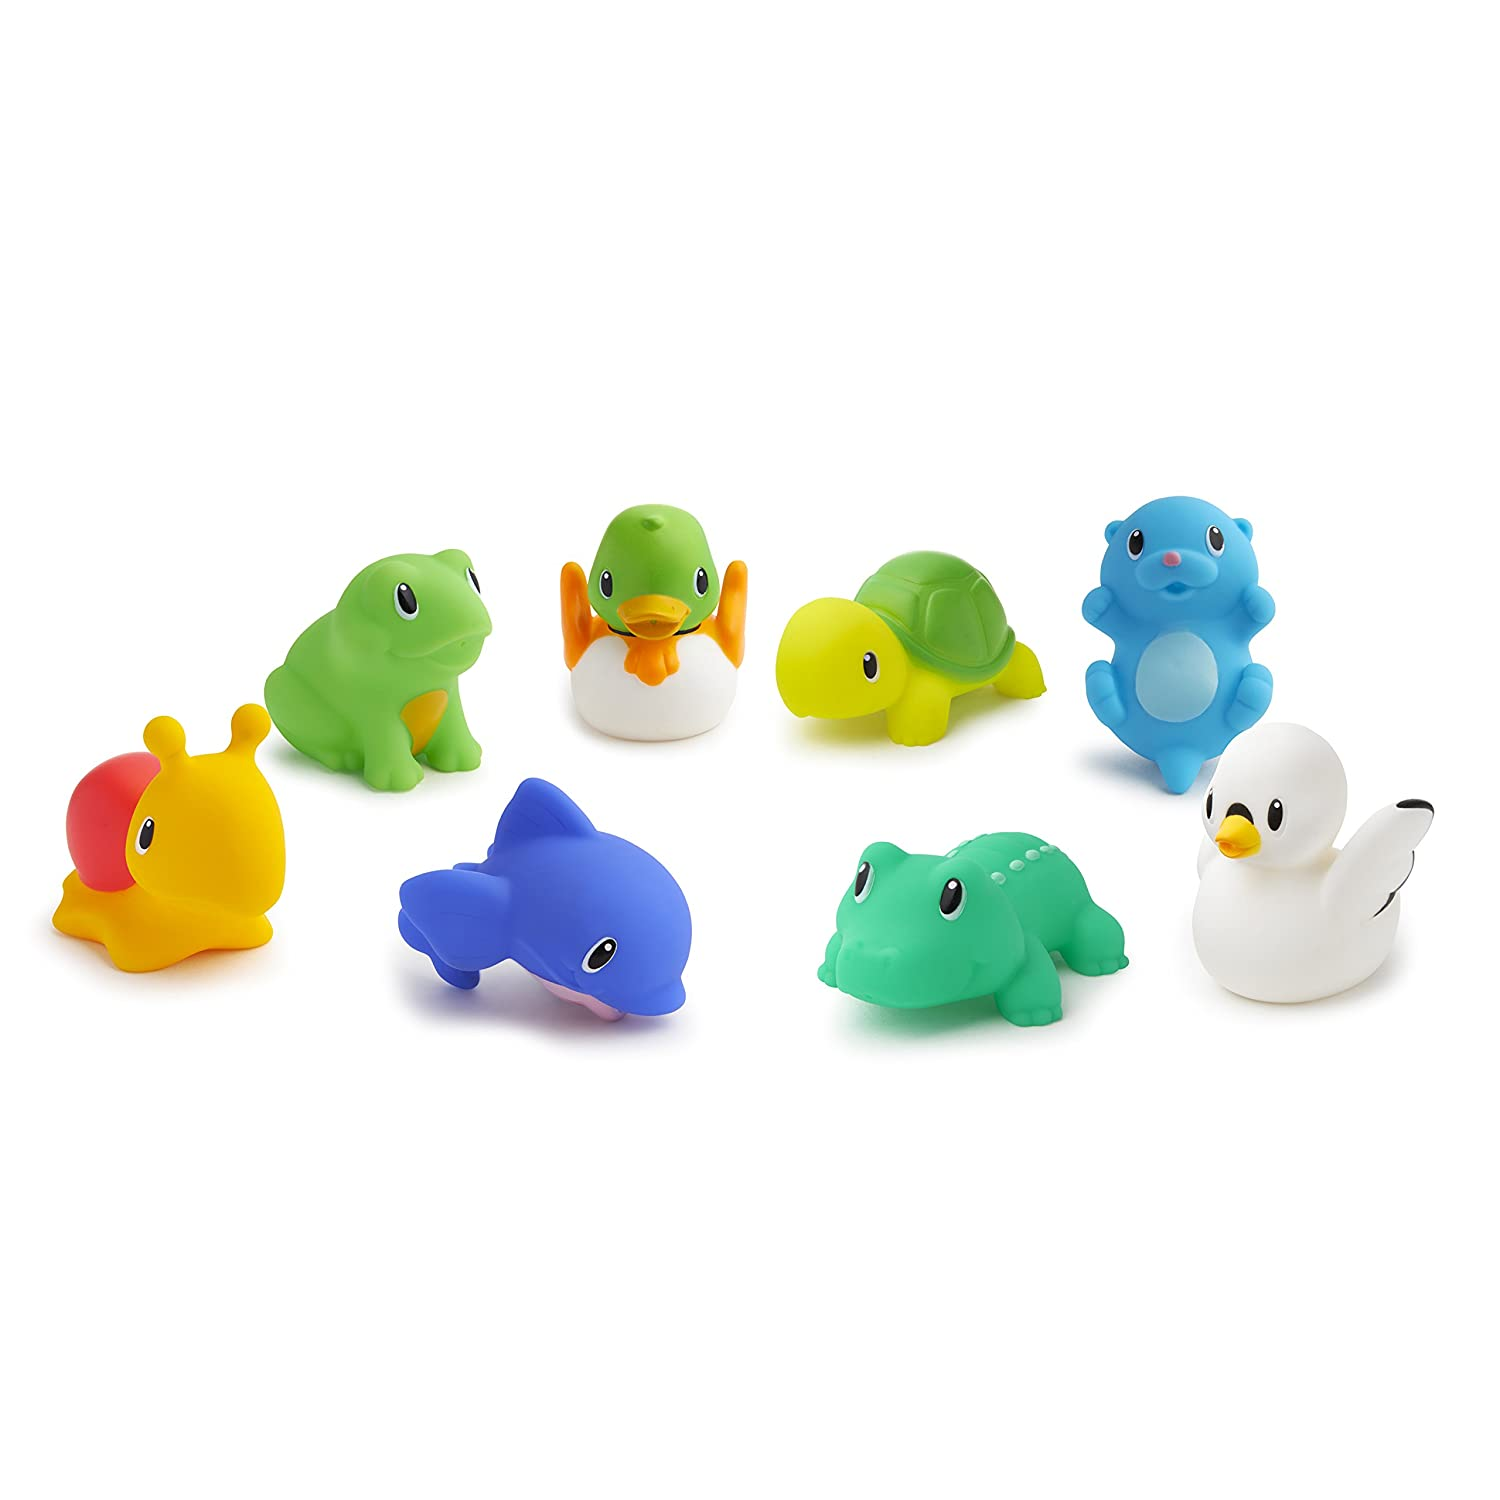 Amazon.com : Munchkin Lake Squirts Bath Toy, 8 Pack : Bath Toys For ...